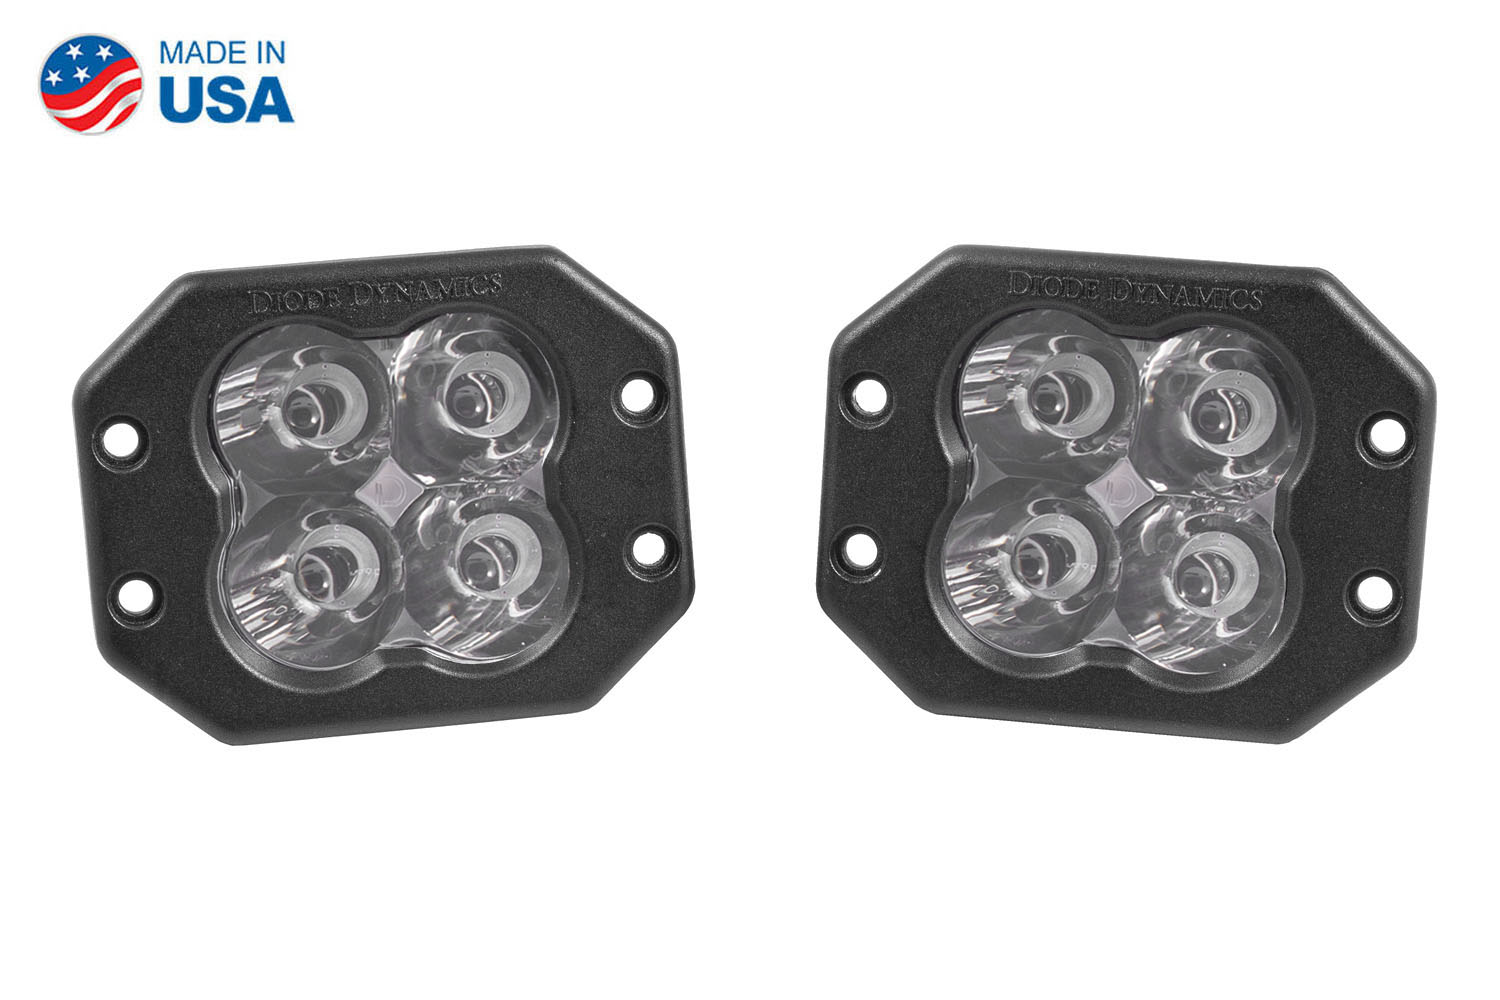 Diode Dynamics Worklight SS3 Pro White Spot Flush (pair)